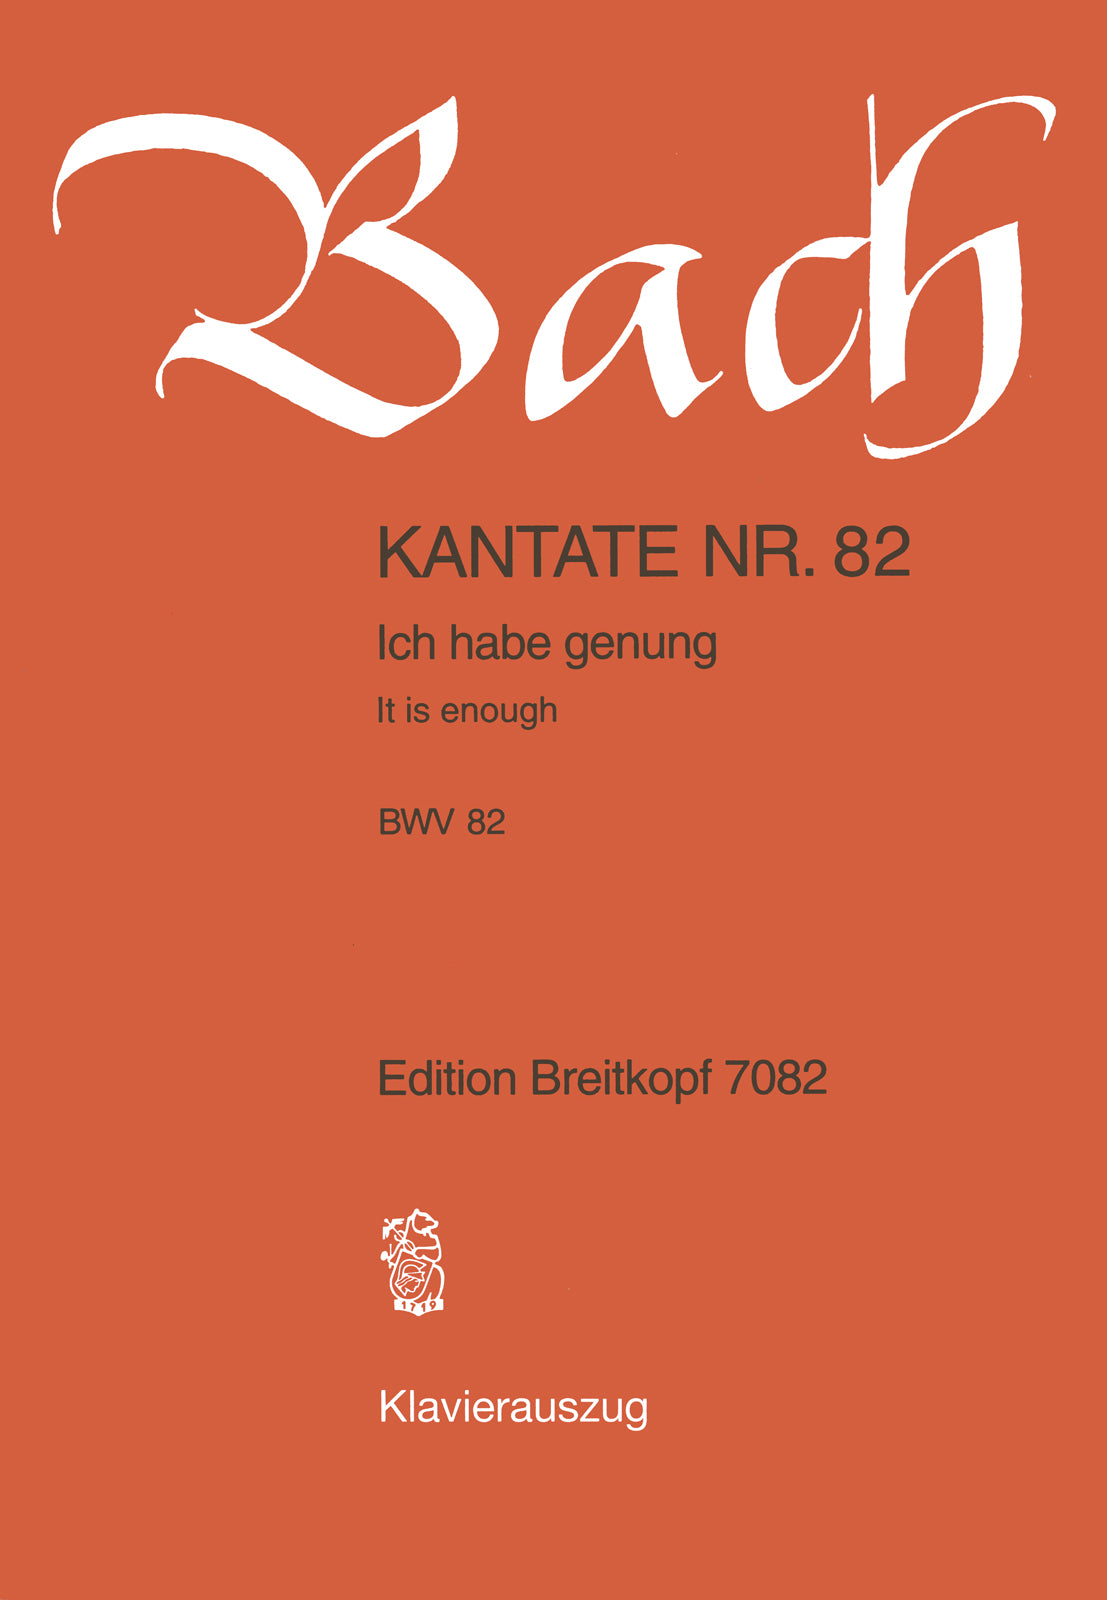 Bach: Ich habe genug, BWV 82 (version for Bass)